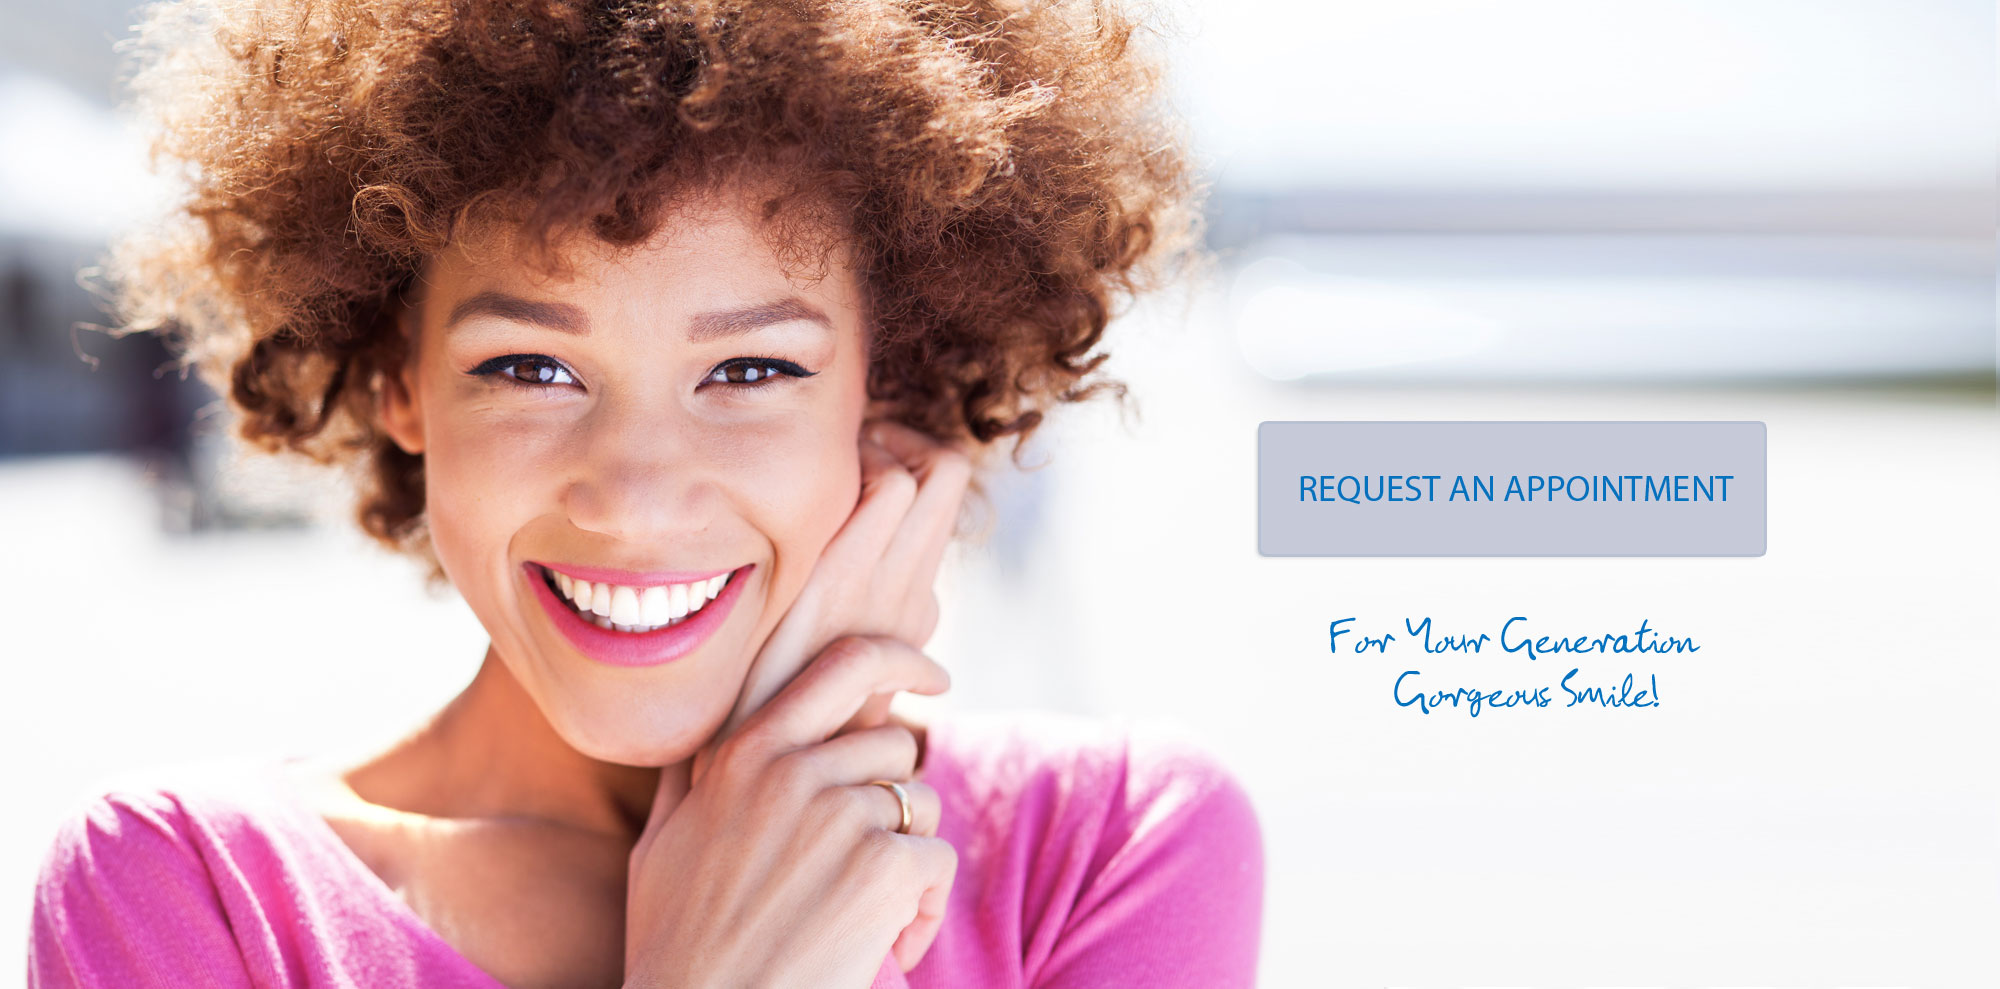 Women Smiling - Request an Appointment